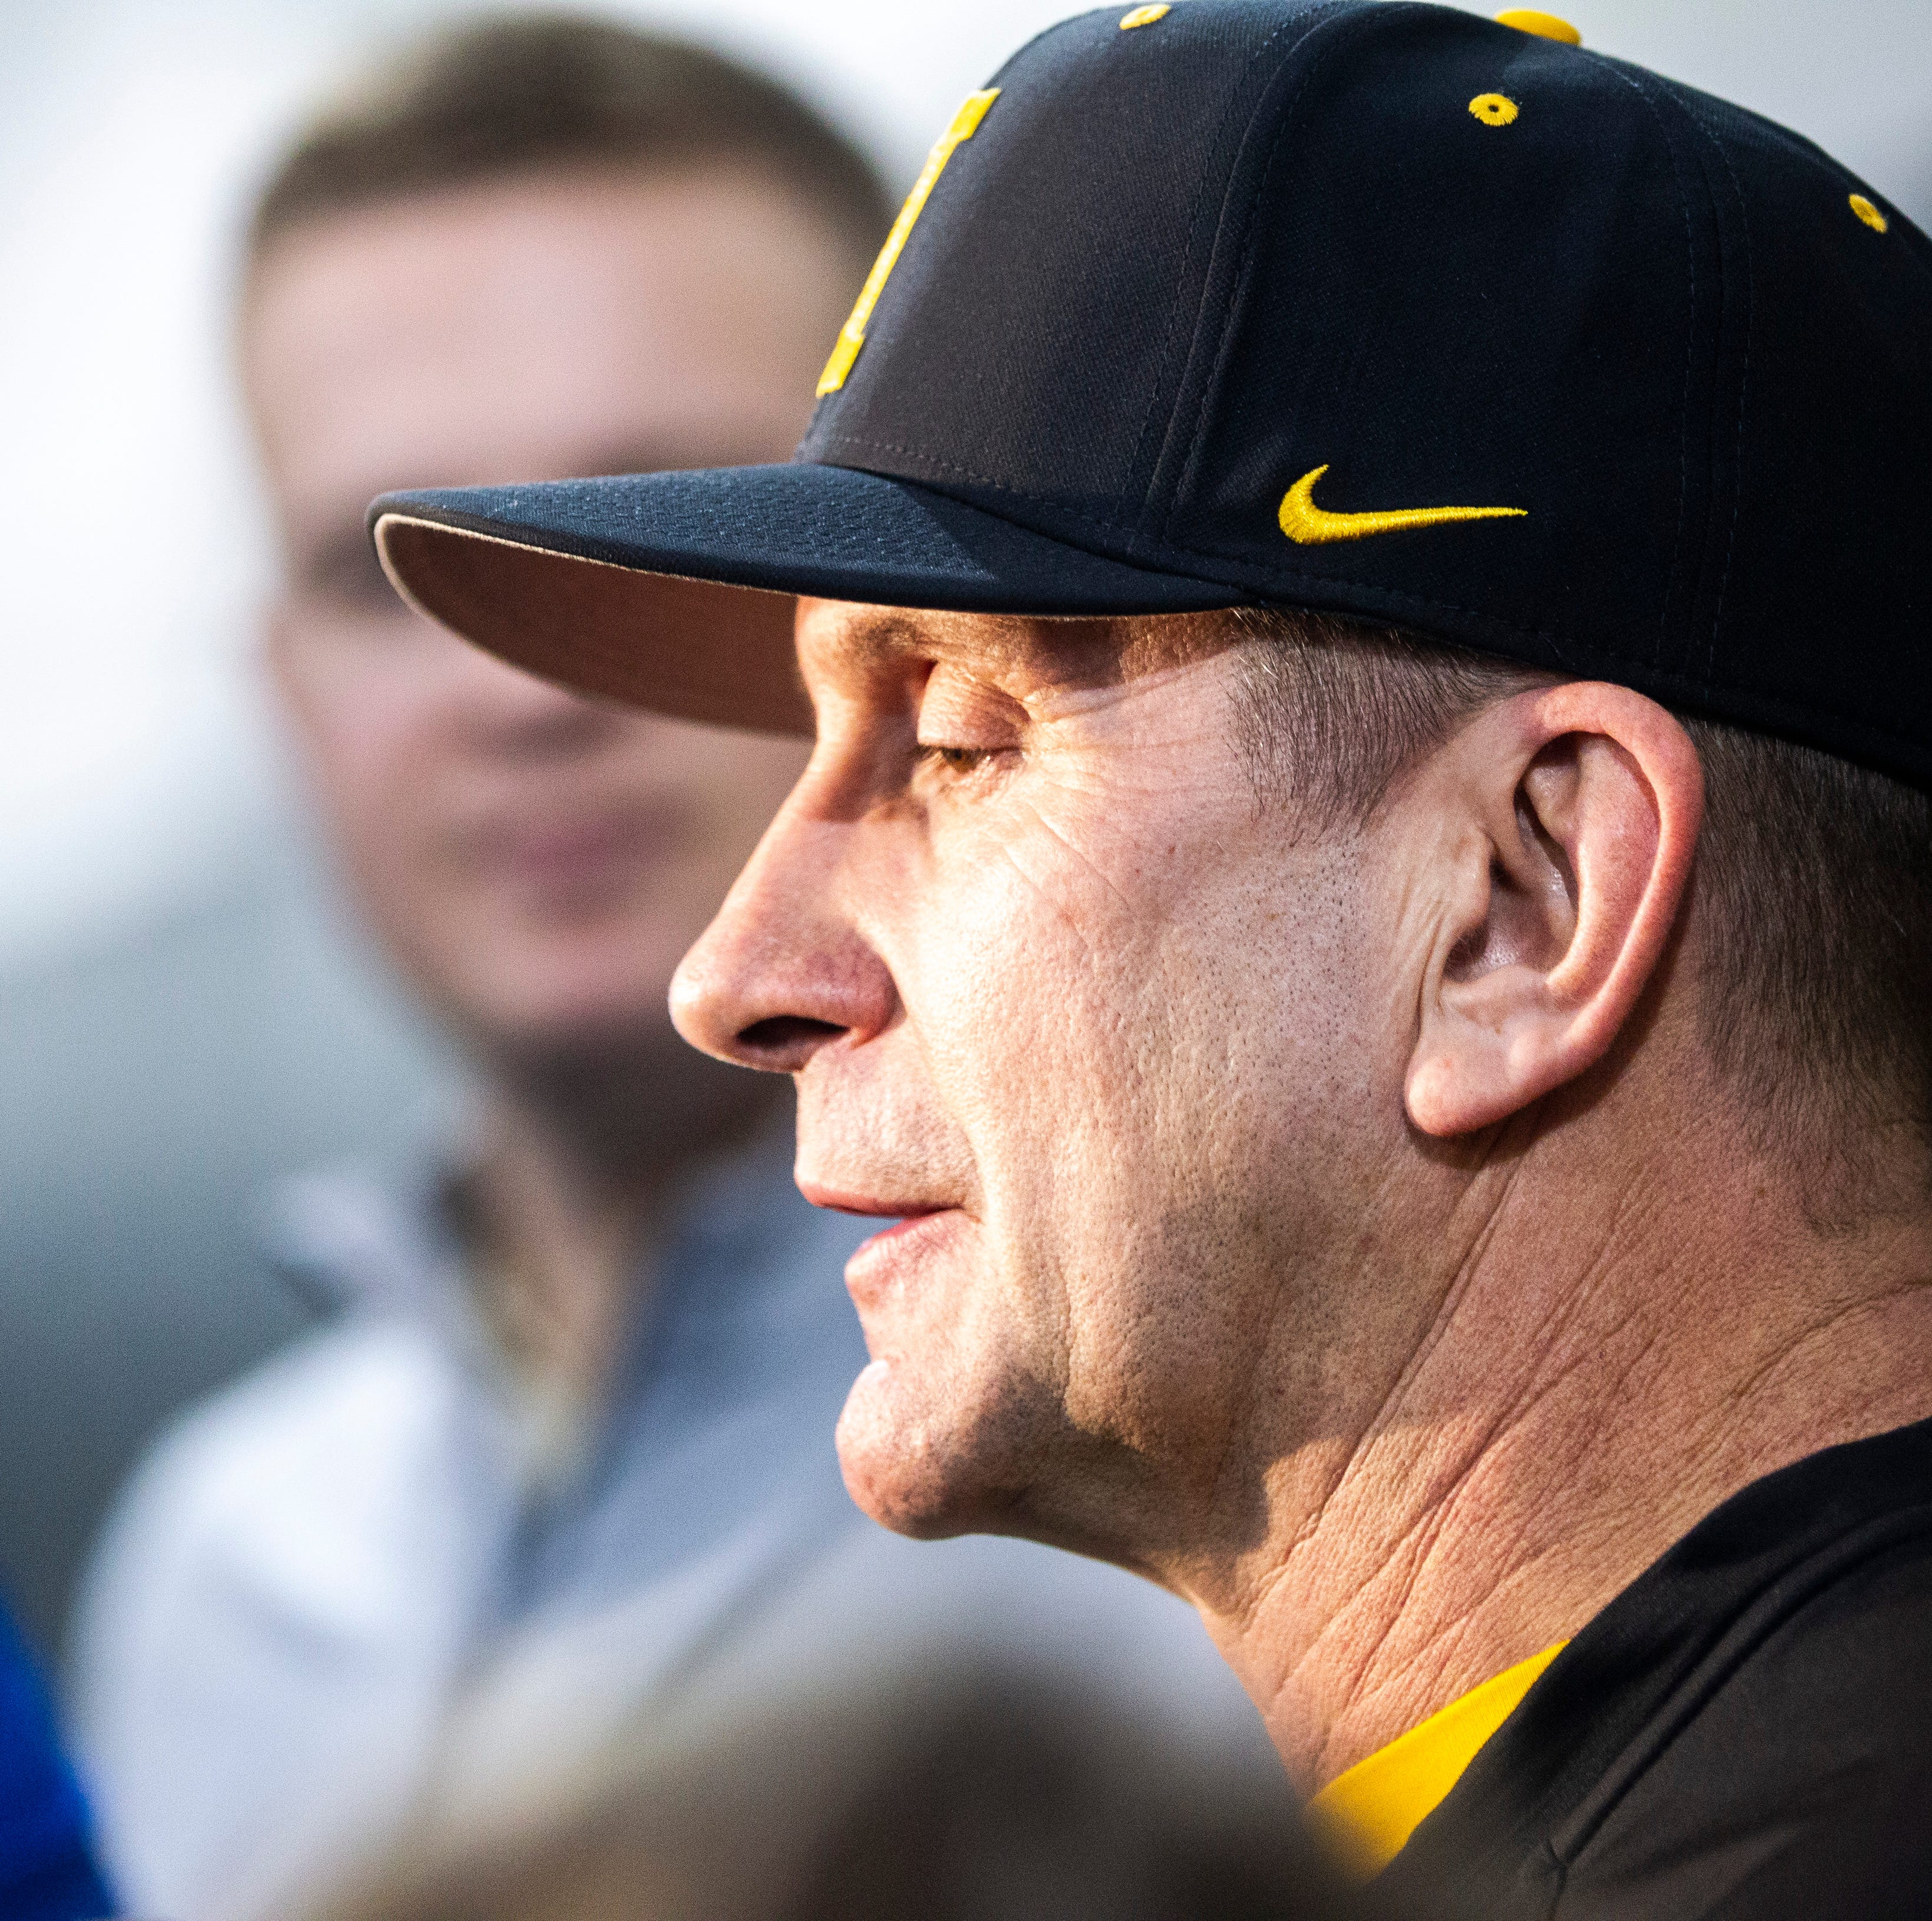 Iowa baseball: Optimism blends with uncertainty as Hawkeyes work with blank canvas in 2019